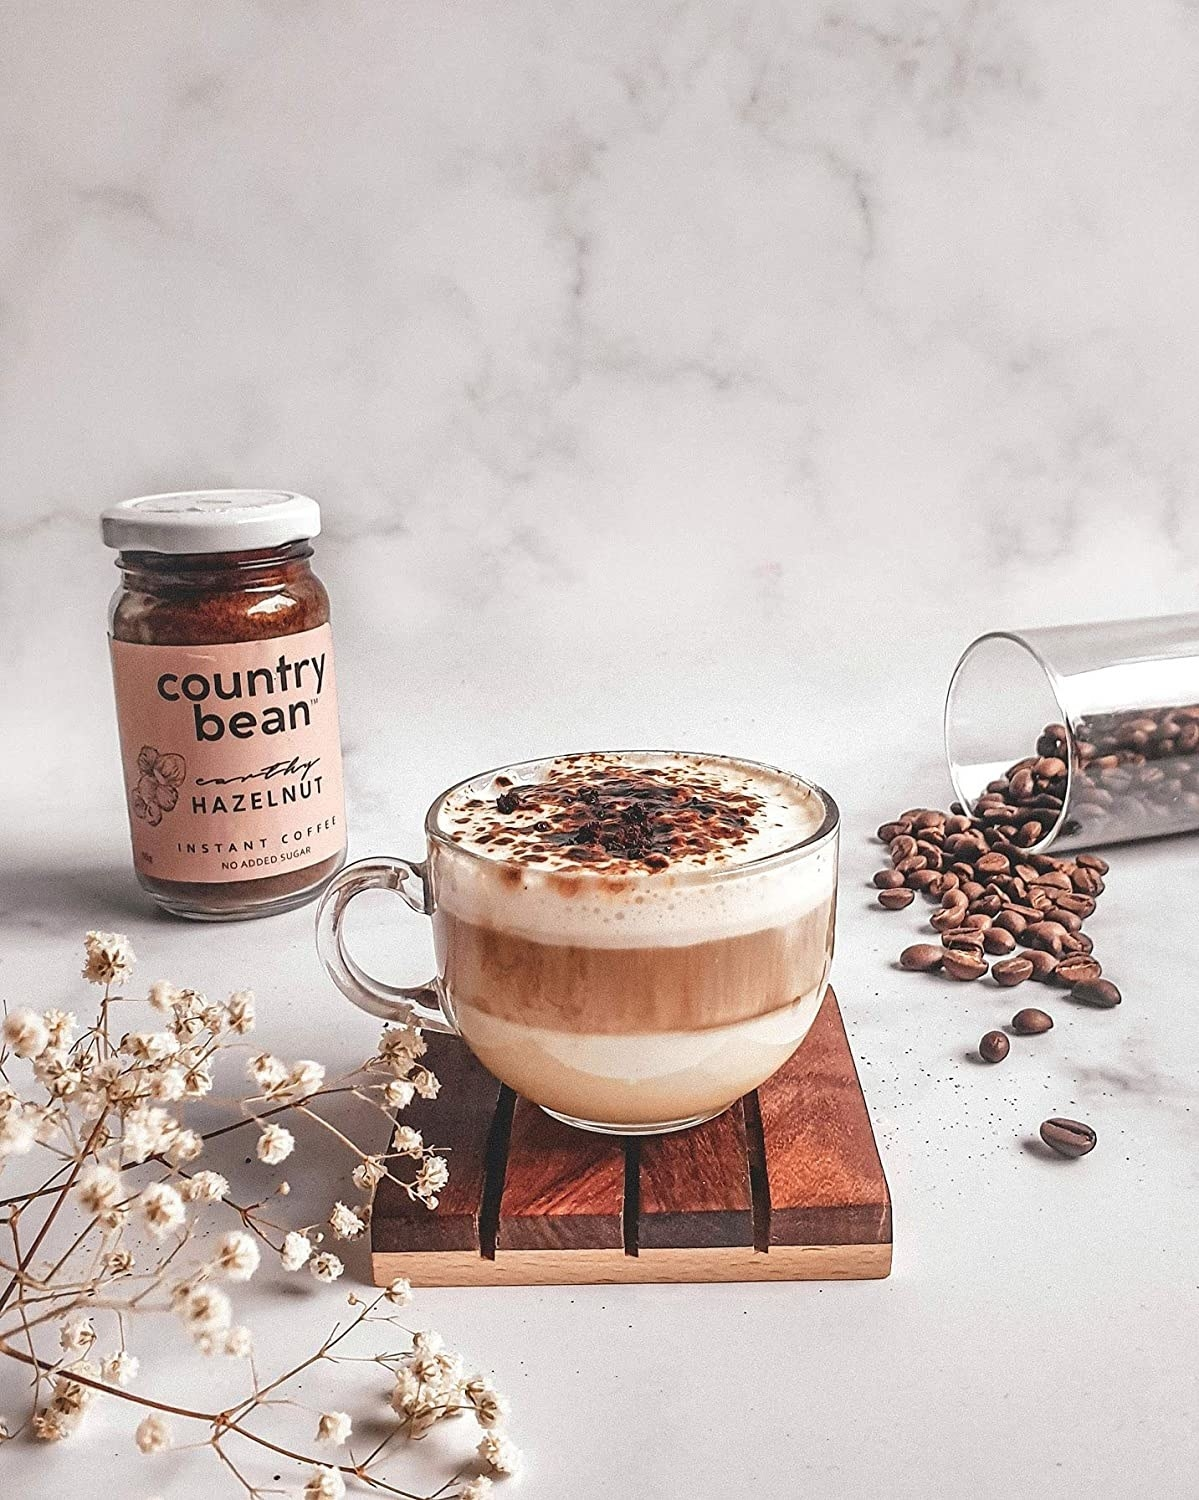 A mug of coffee kept on a wooden plank. There is a jar of spilling coffee beans in the background and sprig of white flowers in the front.